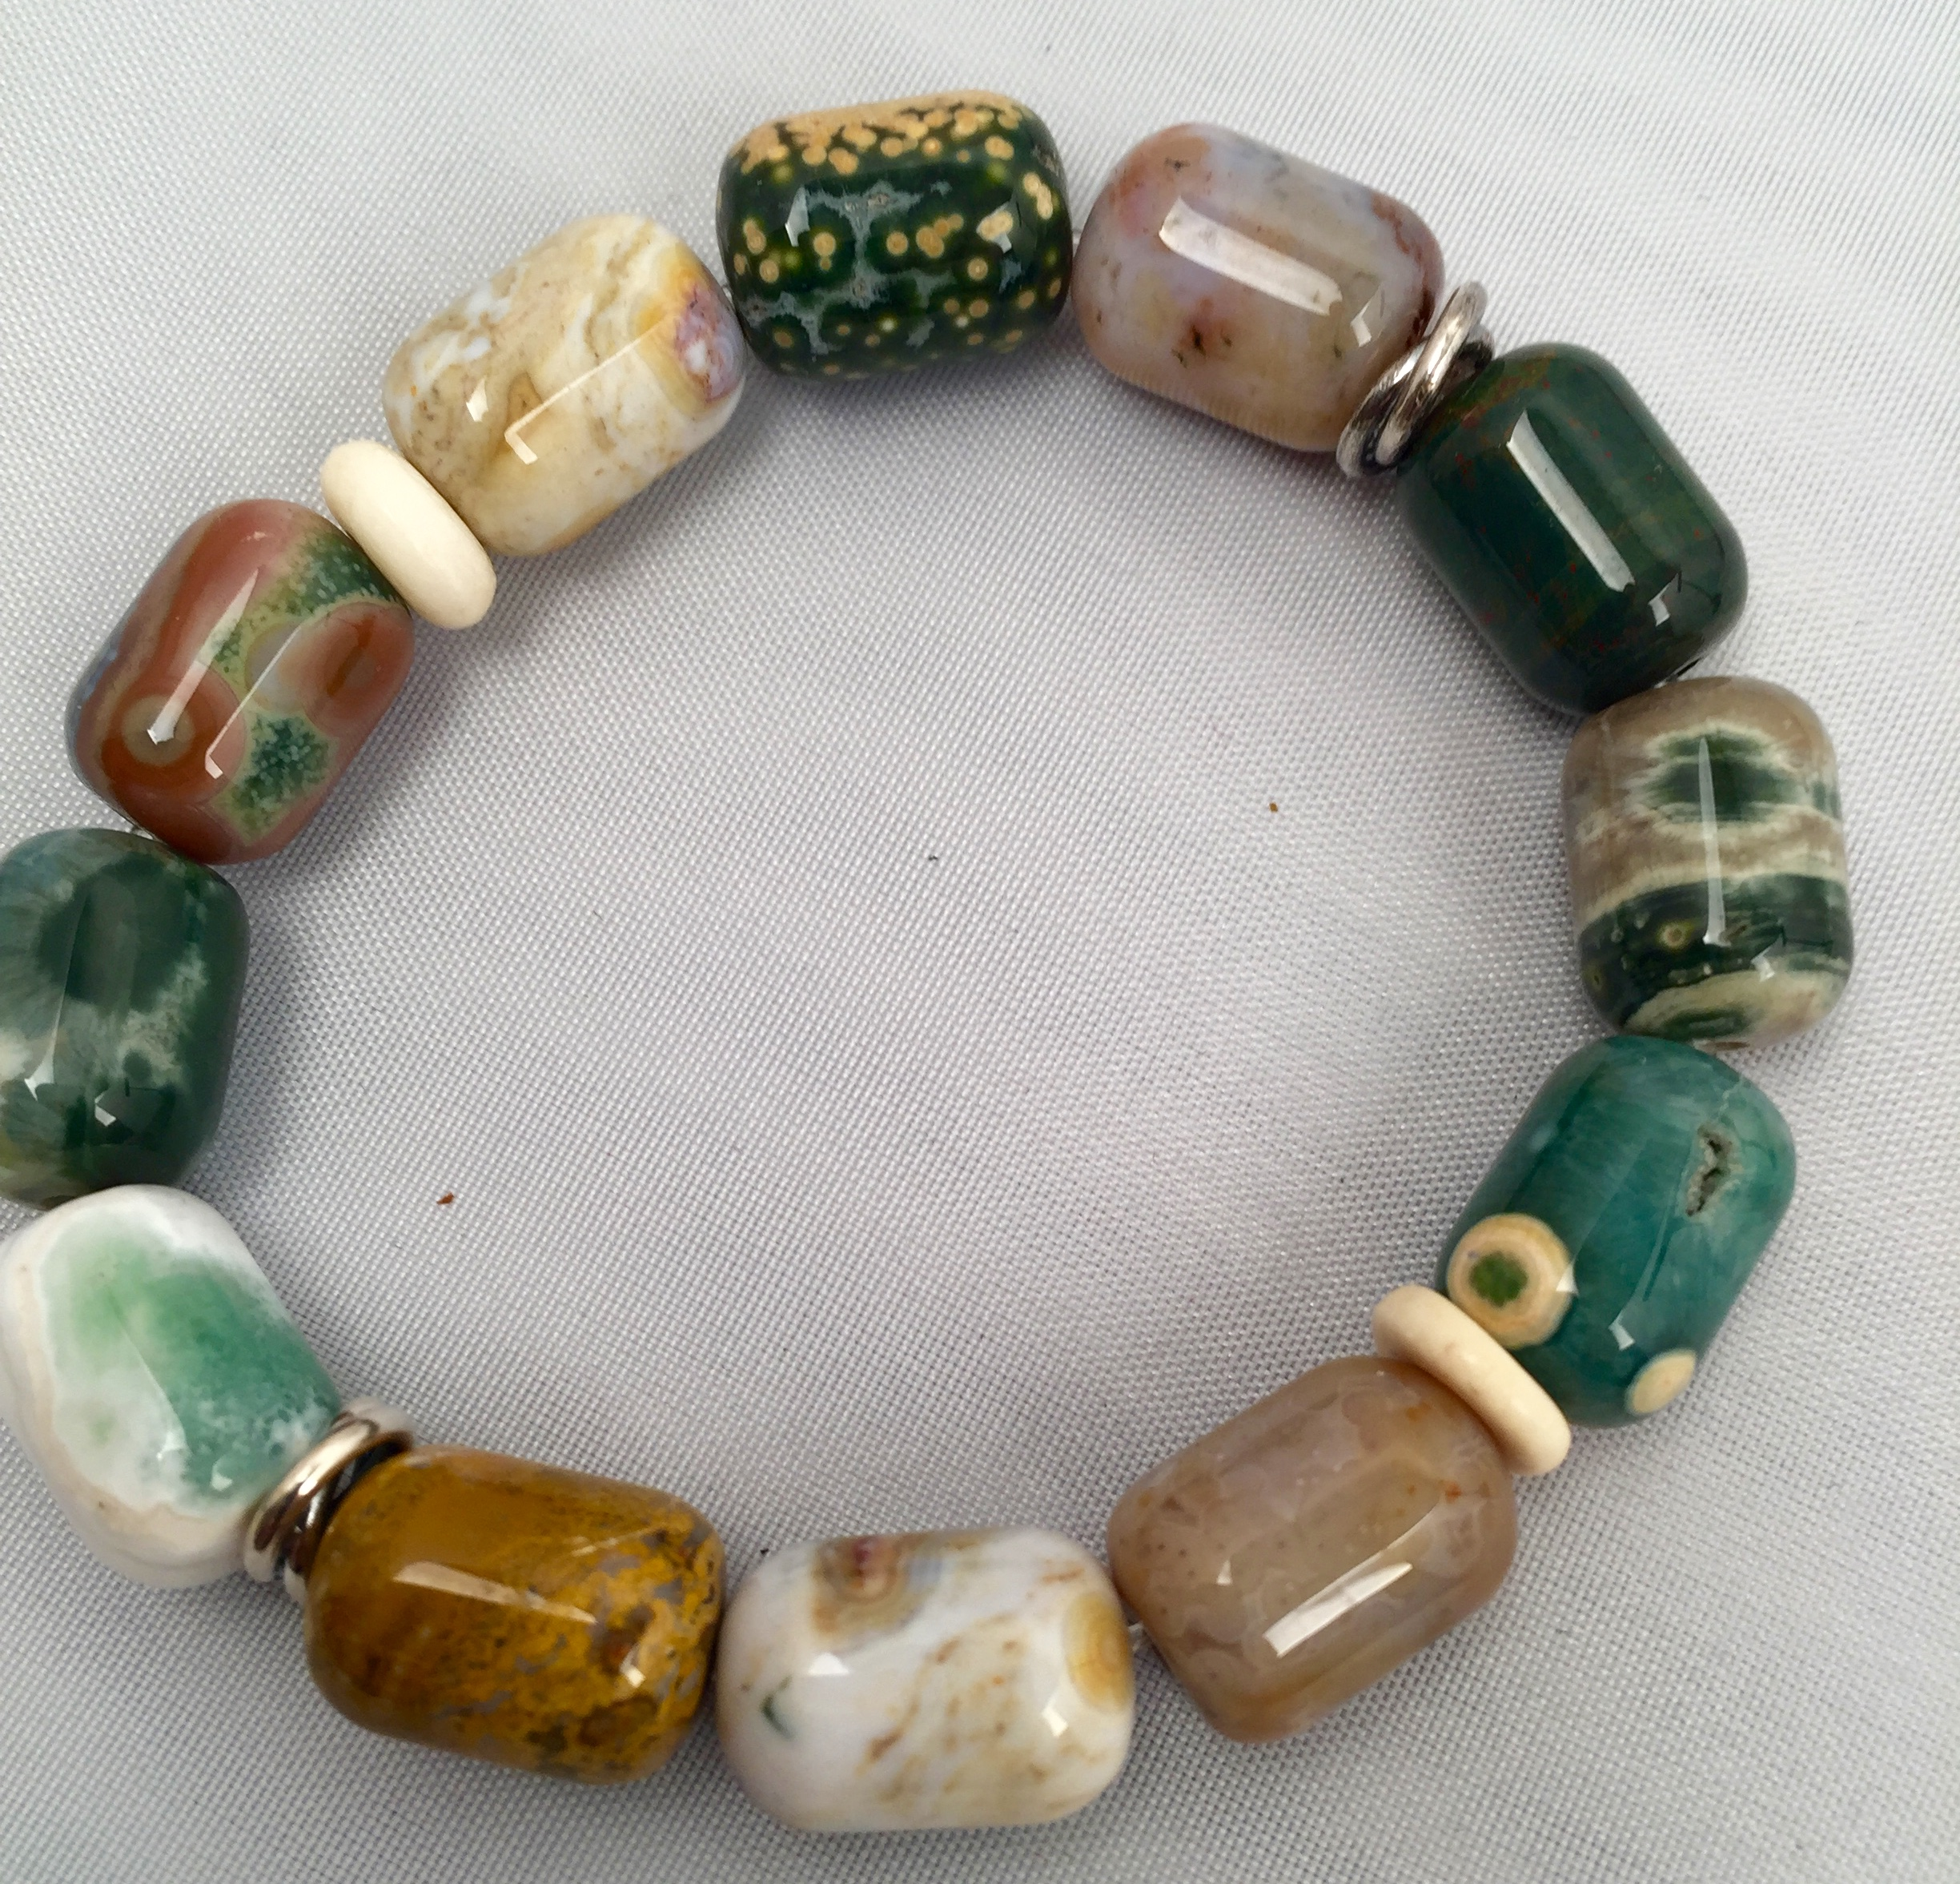 jasper imp mala ocean tree the bracelet